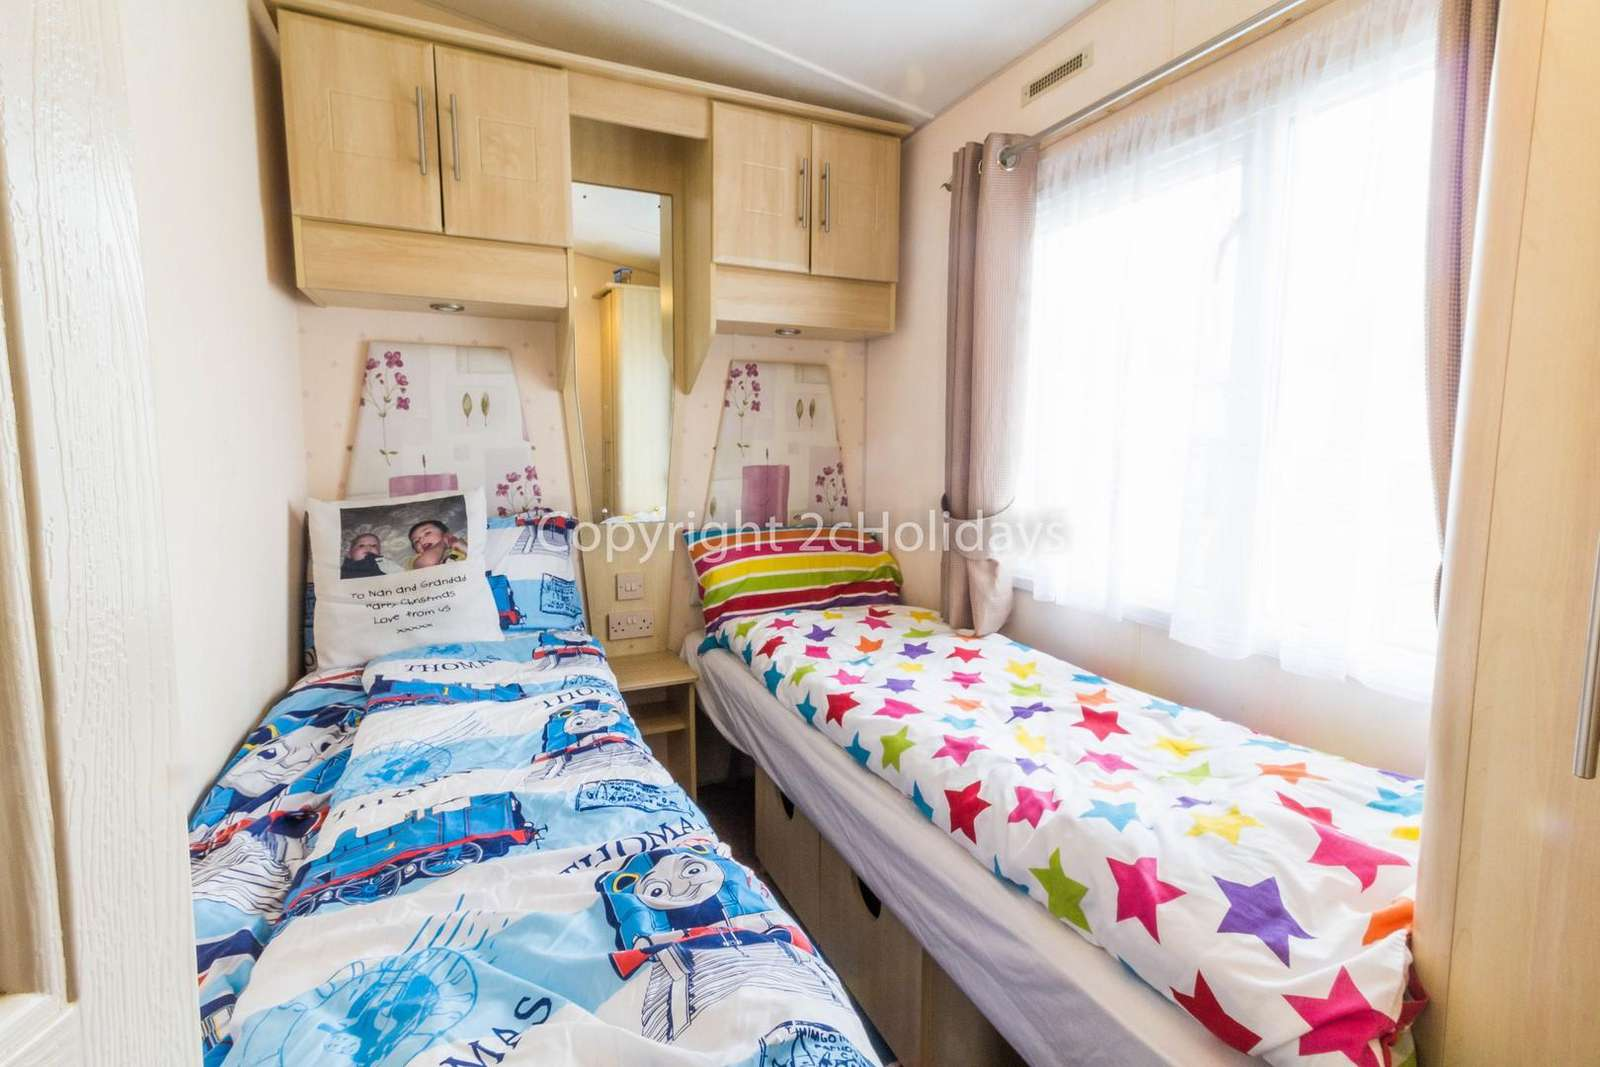 We ensure all holiday homes are cleaned to a high standard